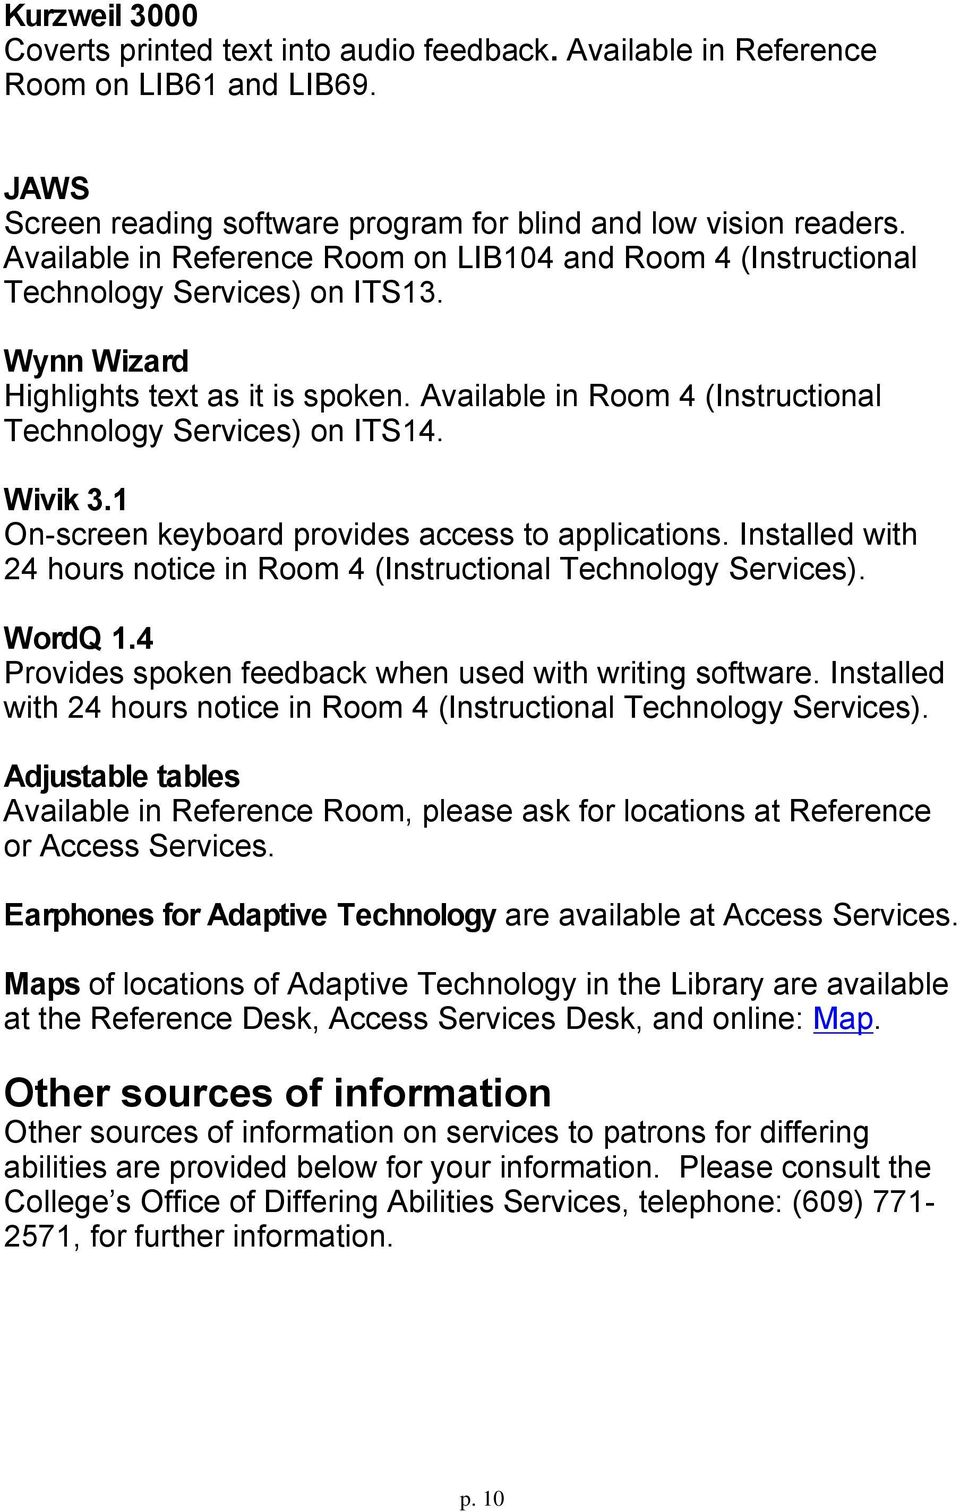 Available in Room 4 (Instructional Technology Services) on ITS14. Wivik 3.1 On-screen keyboard provides access to applications.